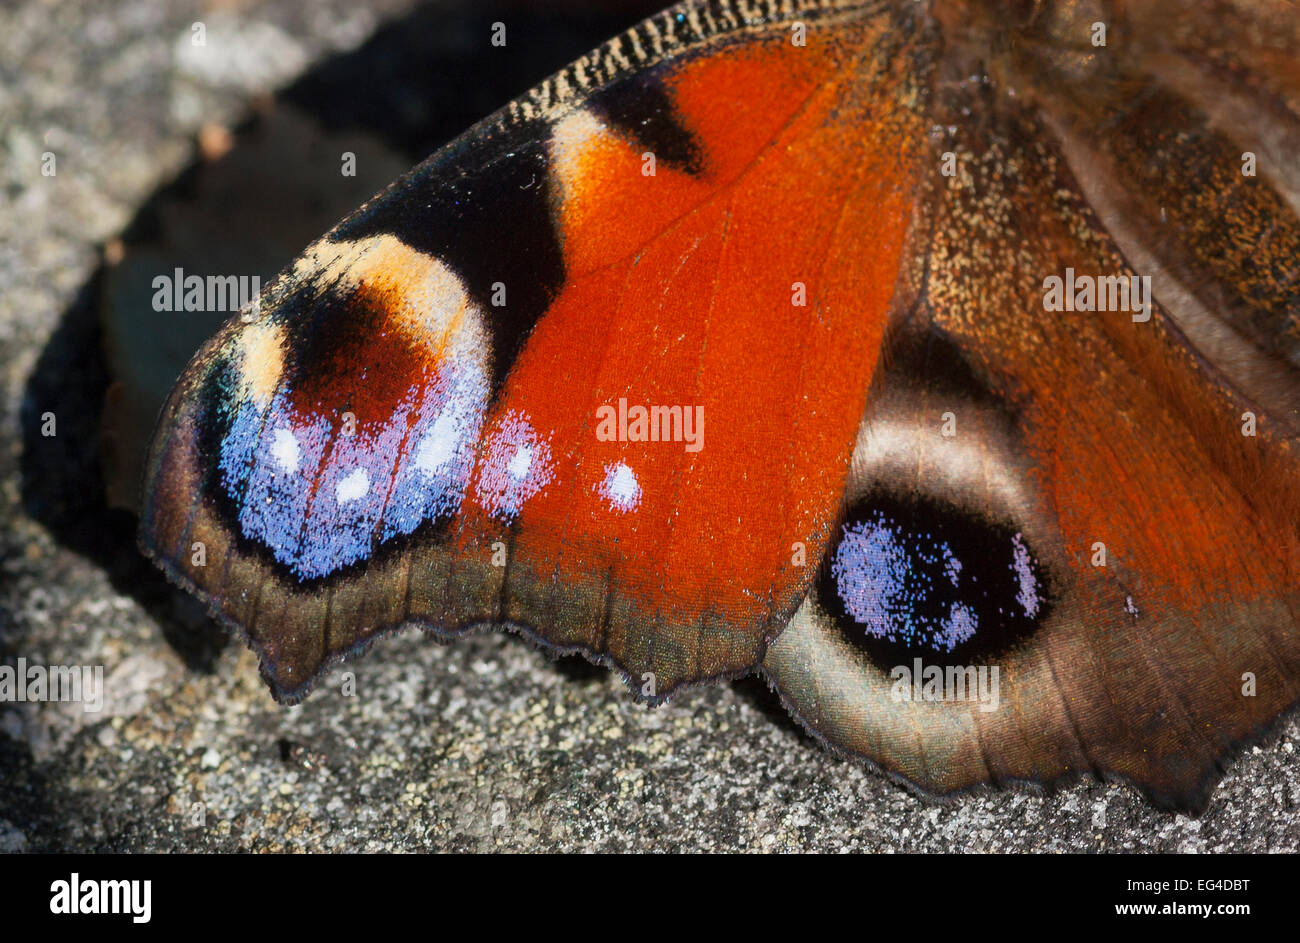 Peacock Butterfly (Inachis io) closeup wings South Karelia southern Finland September. - Stock Image